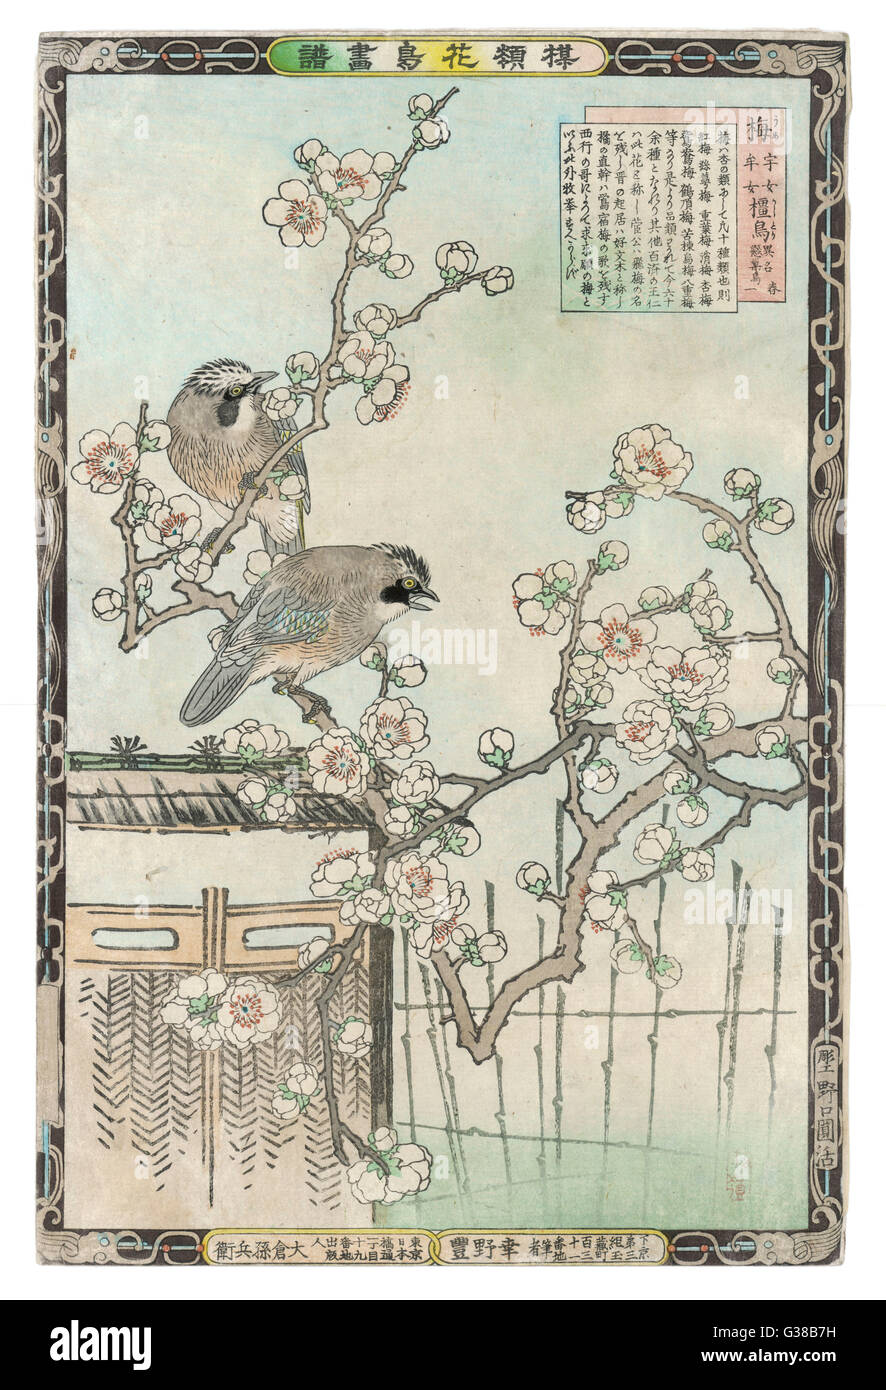 Springtime in Japan - cherry  blossom and a pair of birds        Date: 19th century - Stock Image